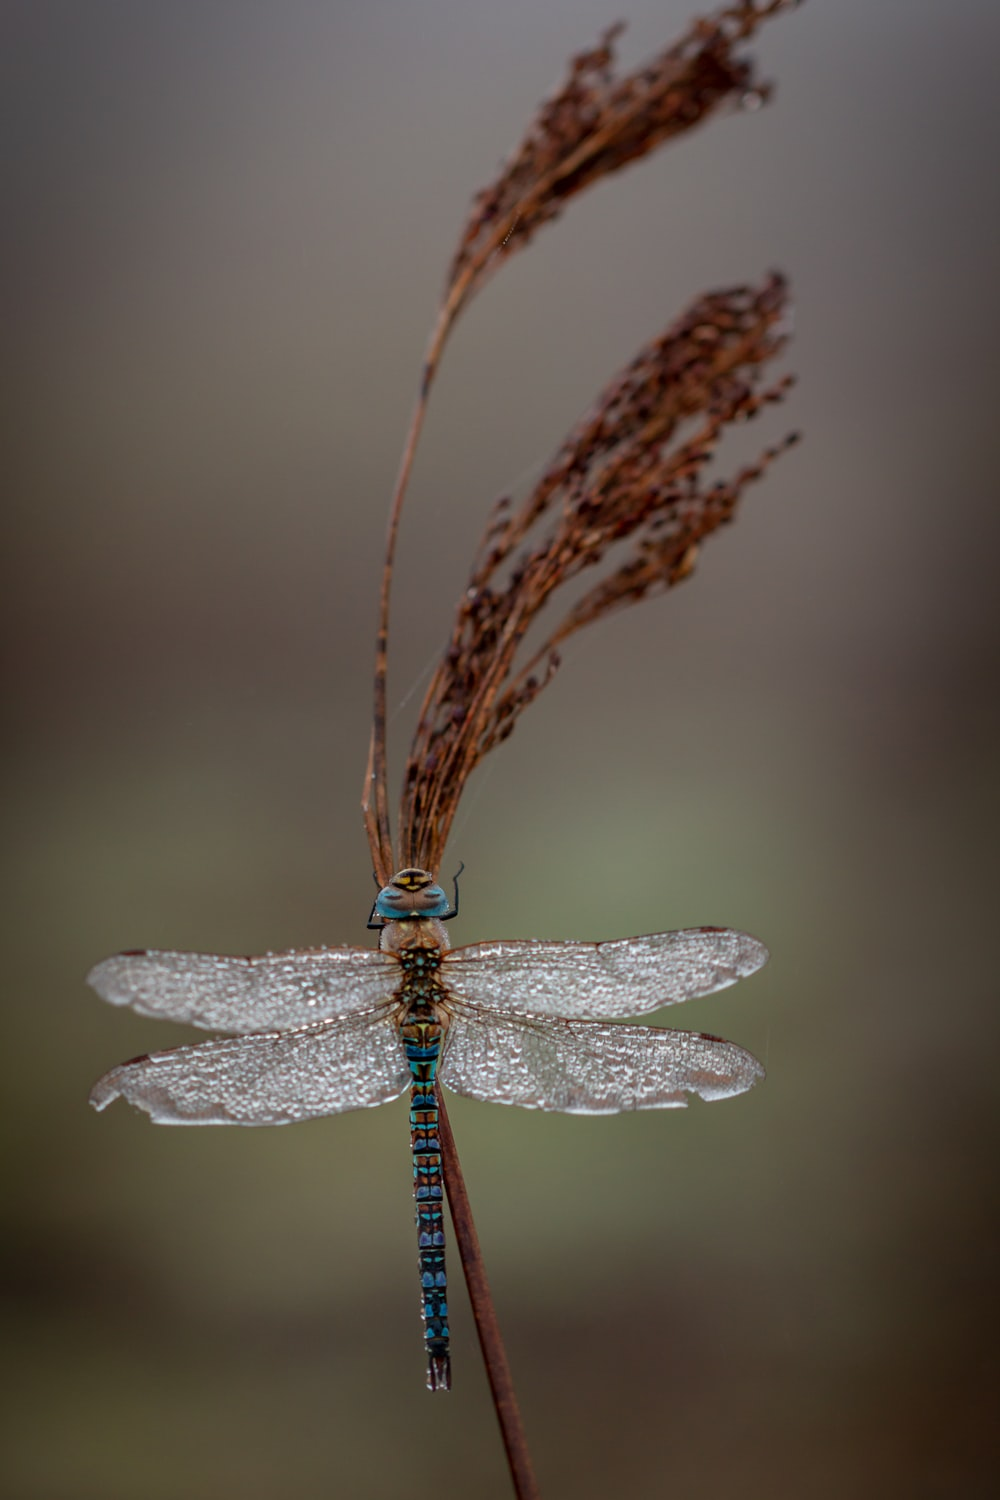 dragonfly on wheat